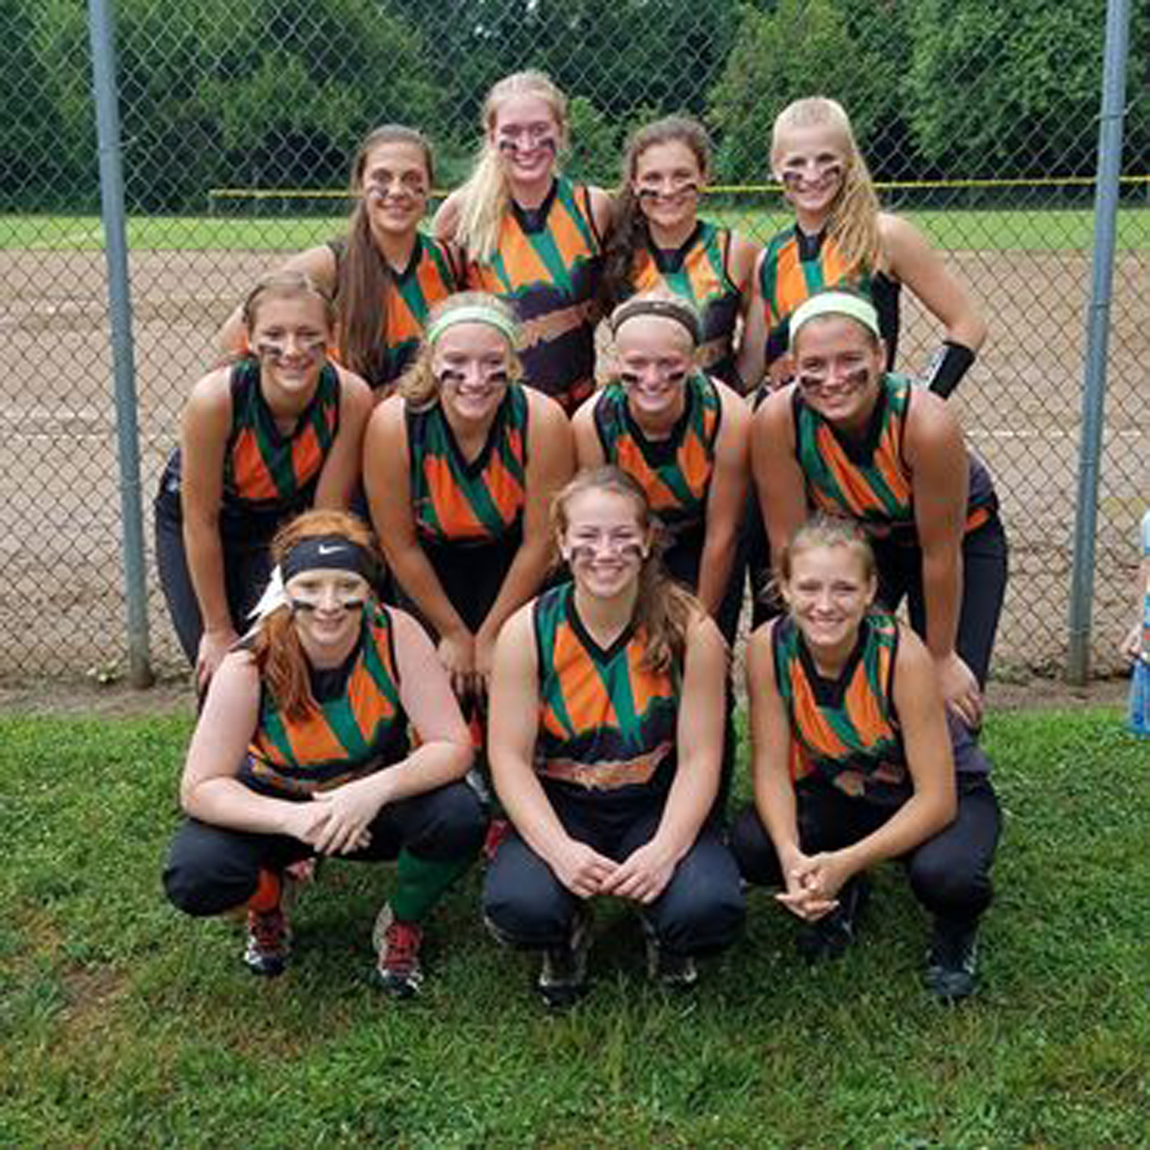 Tri-City Thunder Completes Great Season (07/25/18) | Clarion